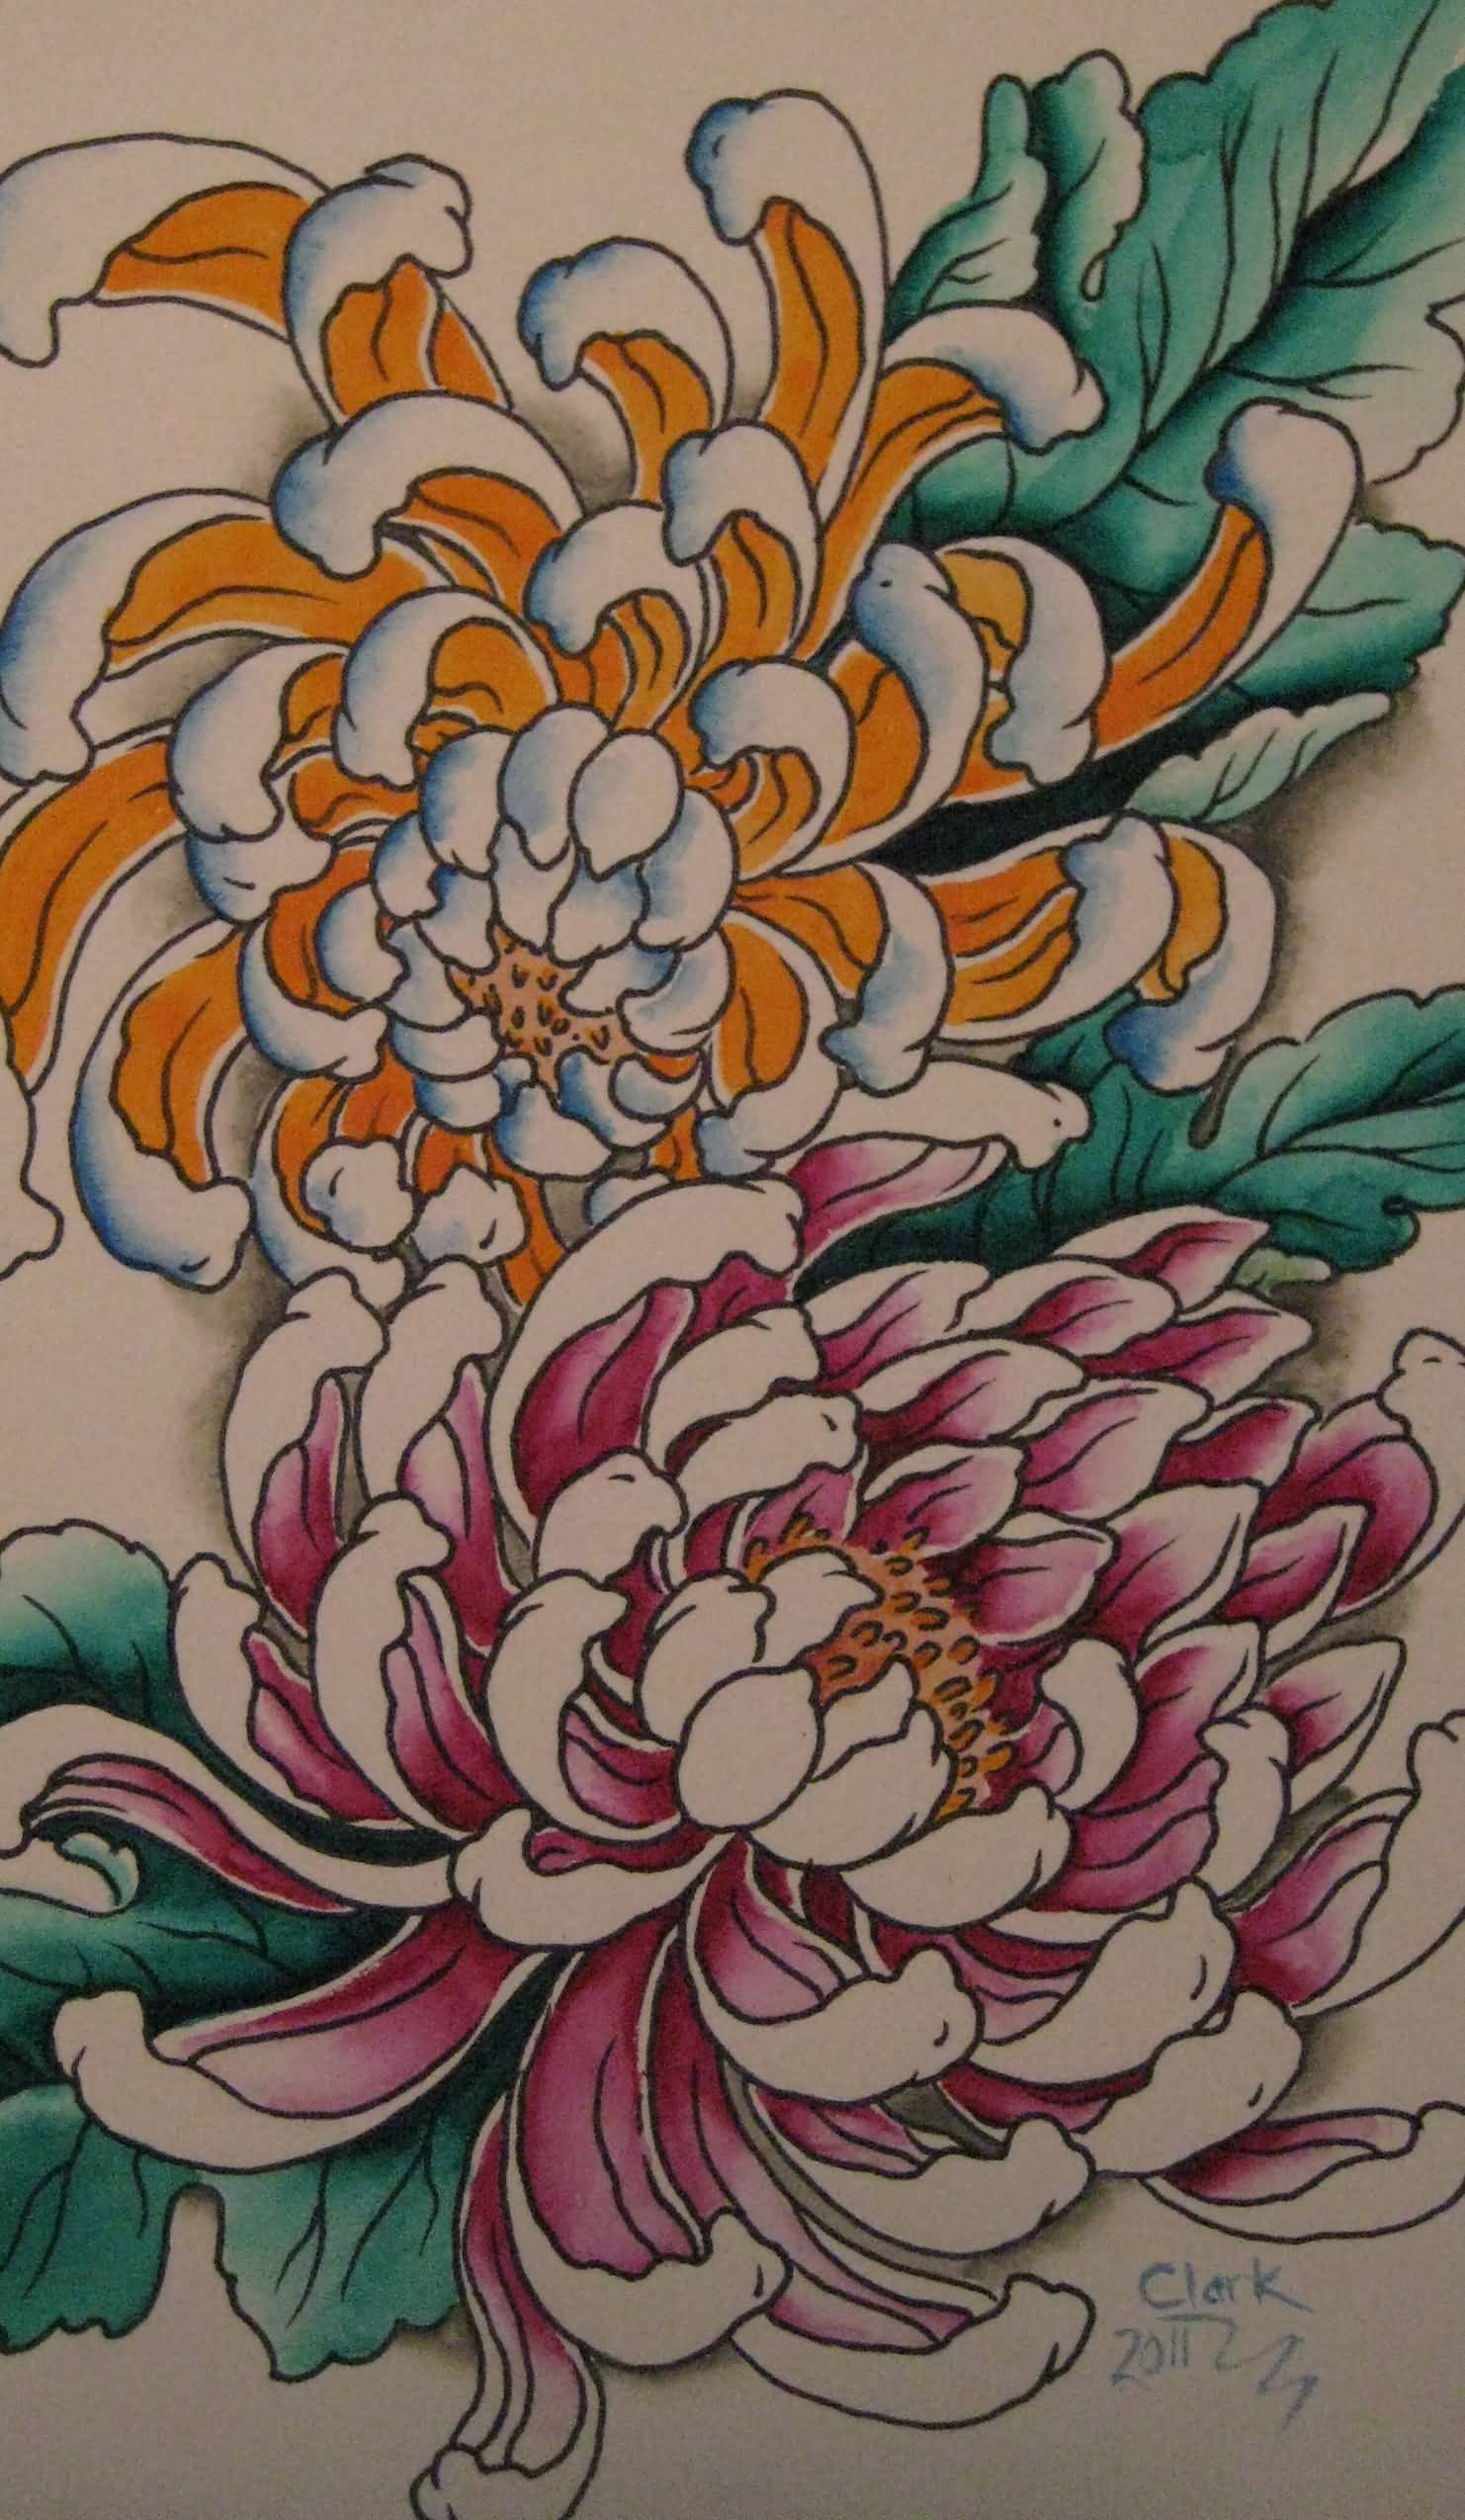 Chrysanthemum tattoos askideas colored chrysanthemum flowers tattoo design amipublicfo Image collections